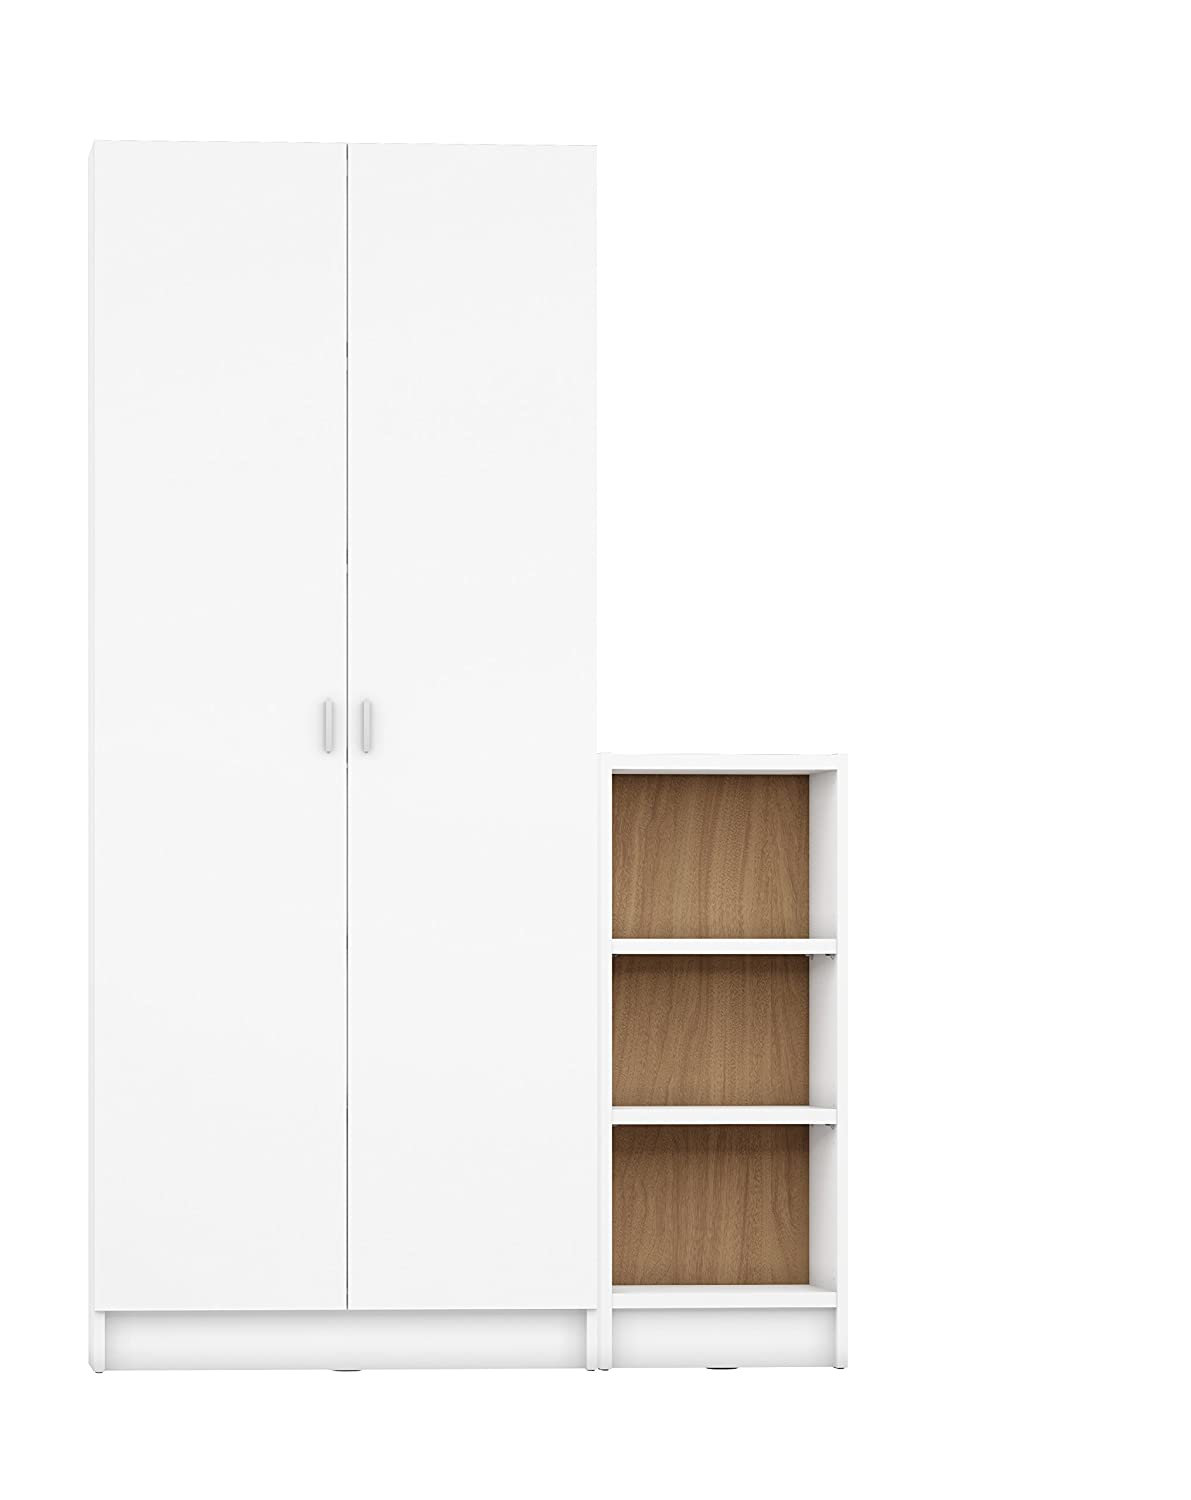 Manhattan Comfort Greenwich 2 Piece Trente 2.0 and Tall 1.0 Horizontal Bookcase Collection Modern Free Standing Bookcases with Closed Base, Combined 9 Shelves, White Matte Maple Cream